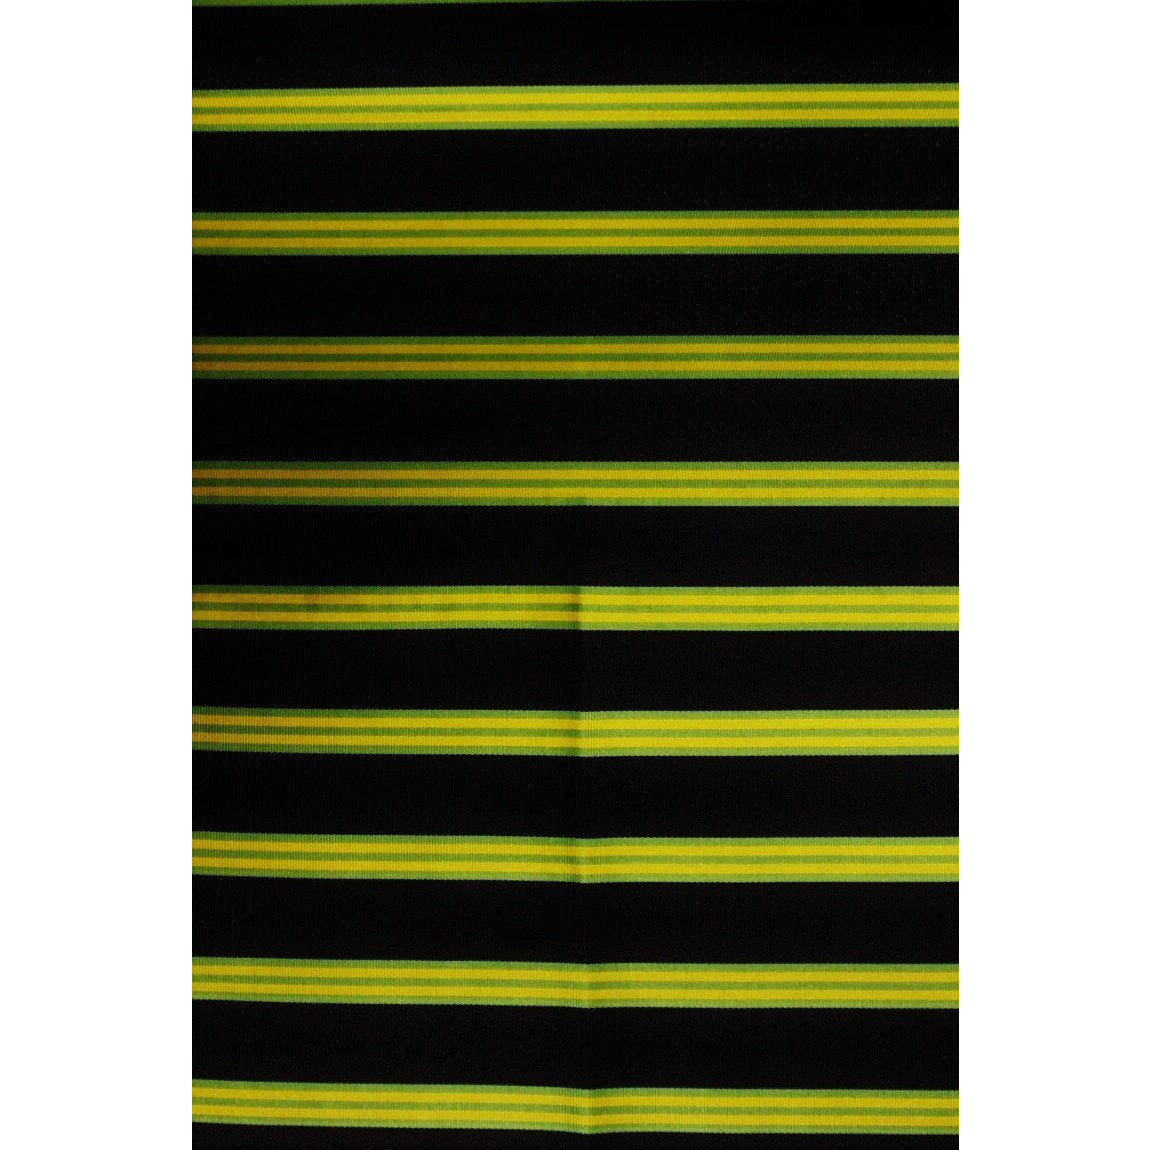 Brooks Brothers English Silk Neckwear Fabric with Navy, Green, & Gold Regimental Stripes